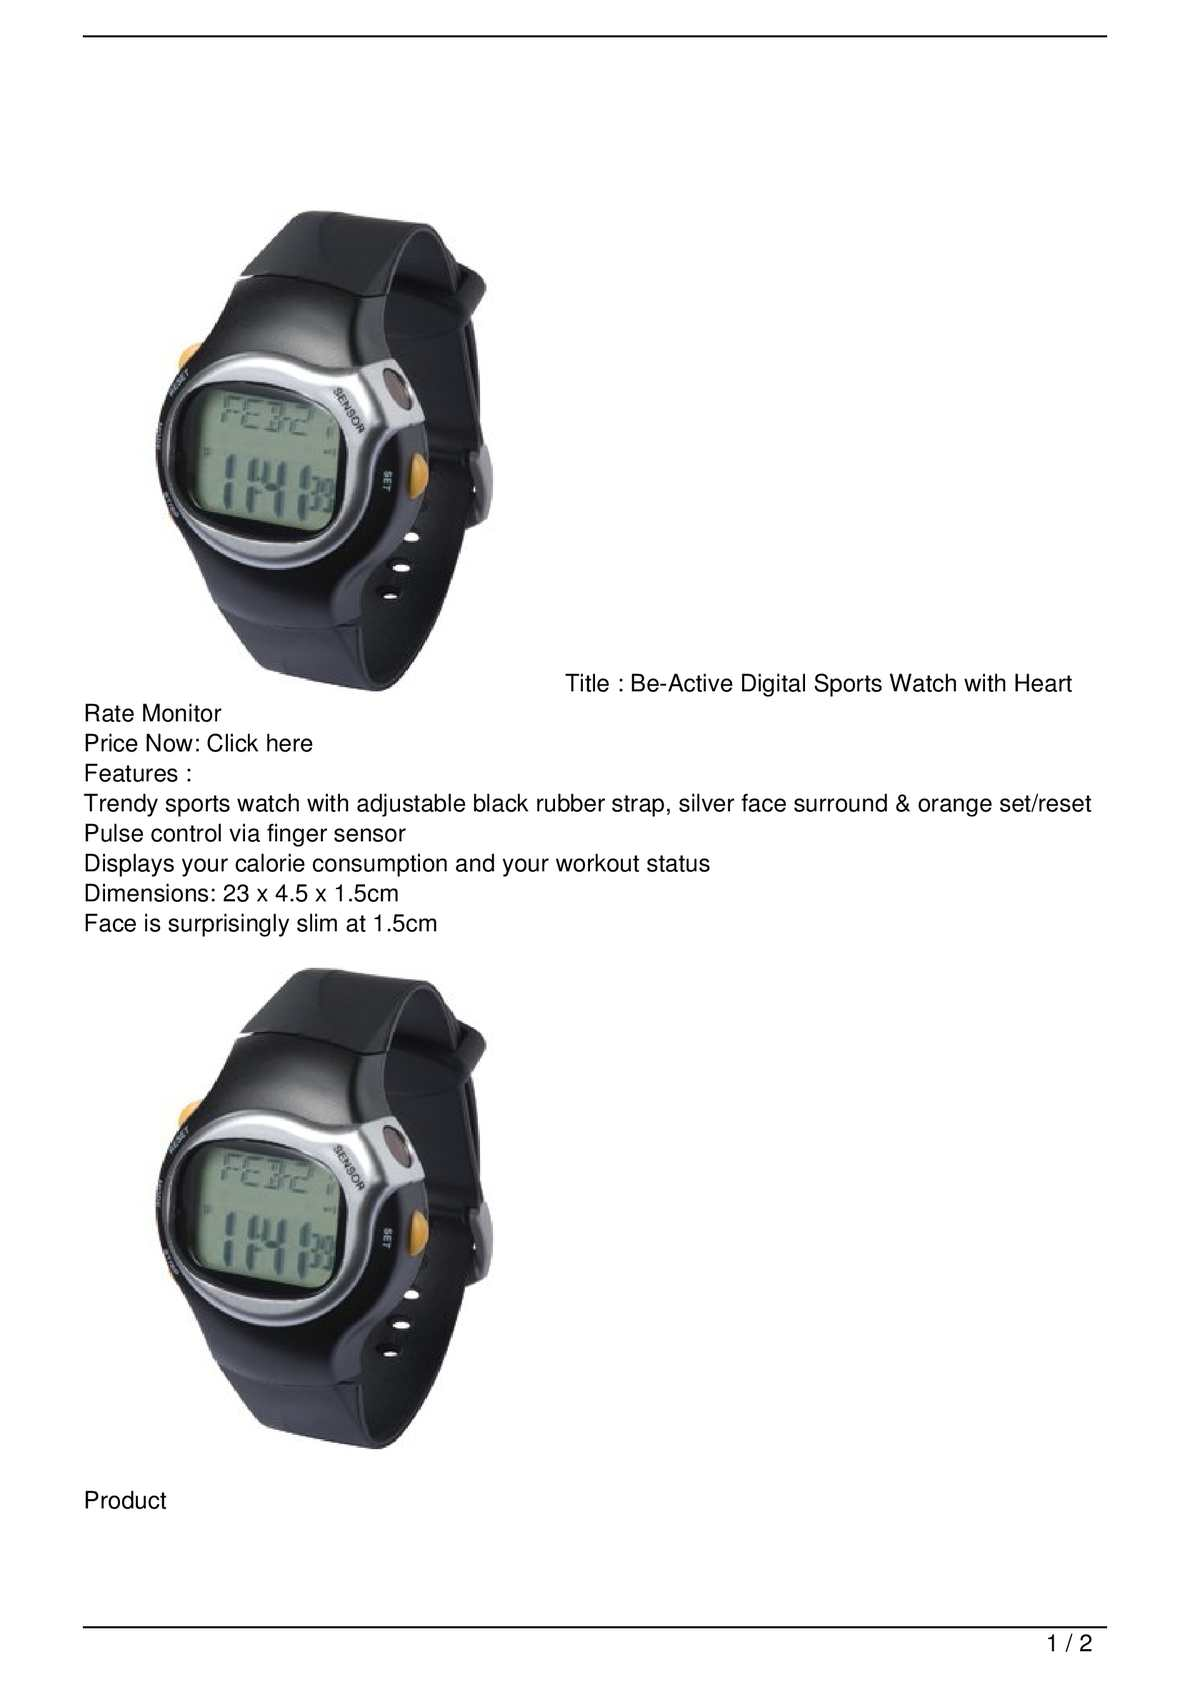 Calaméo - Be-Active Digital Sports Watch with Heart Rate